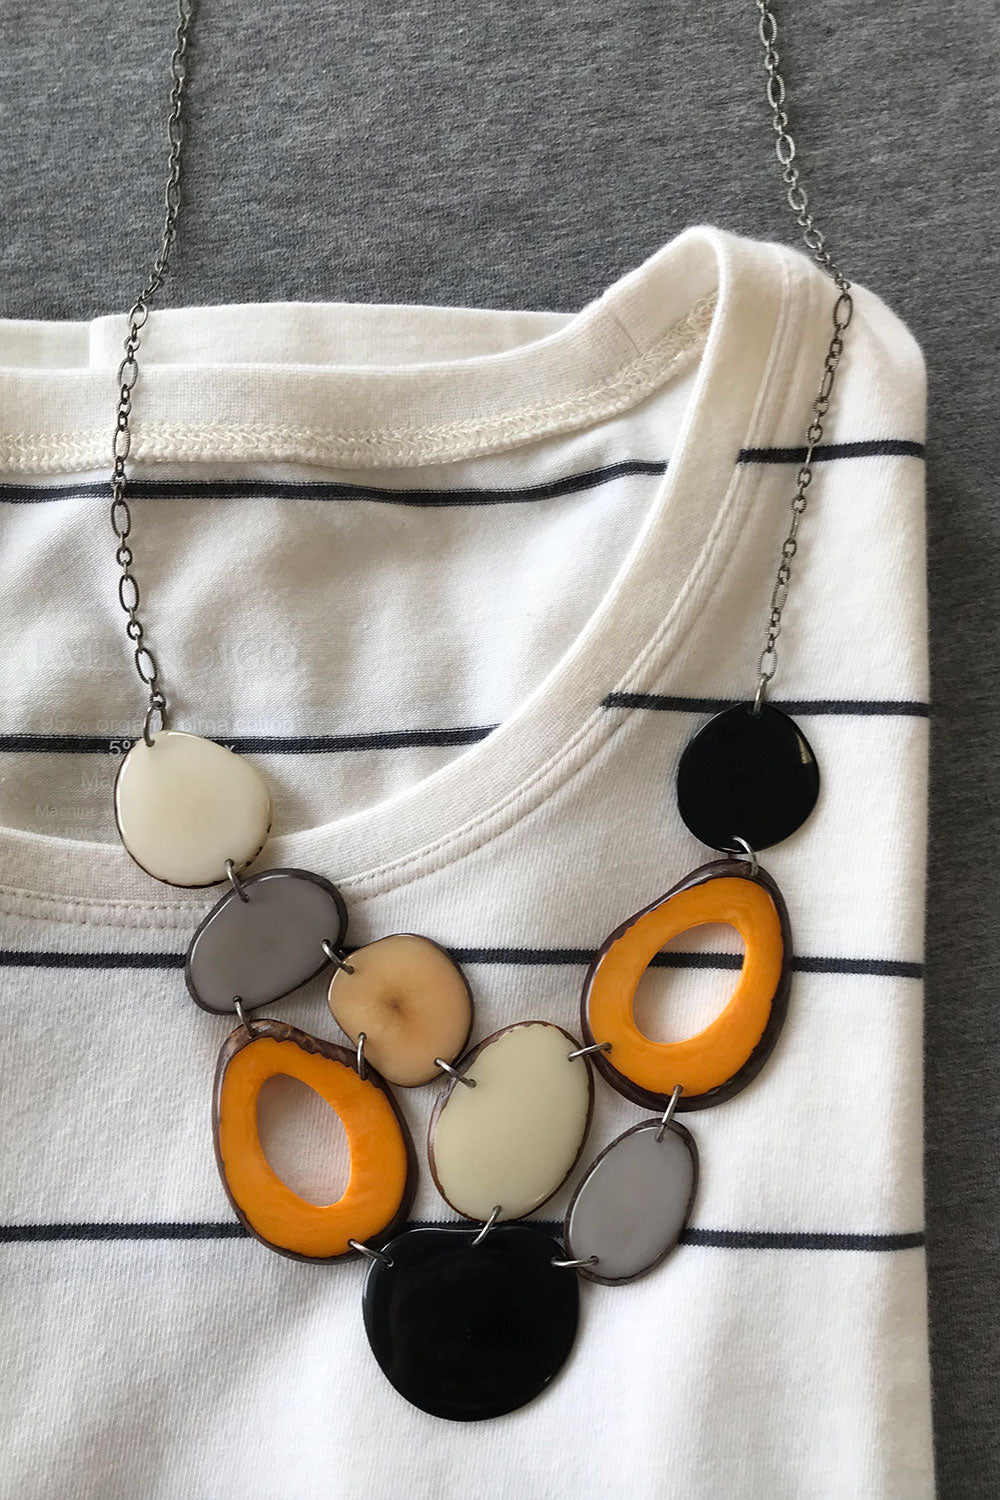 The Medley Tagua Nut Necklace